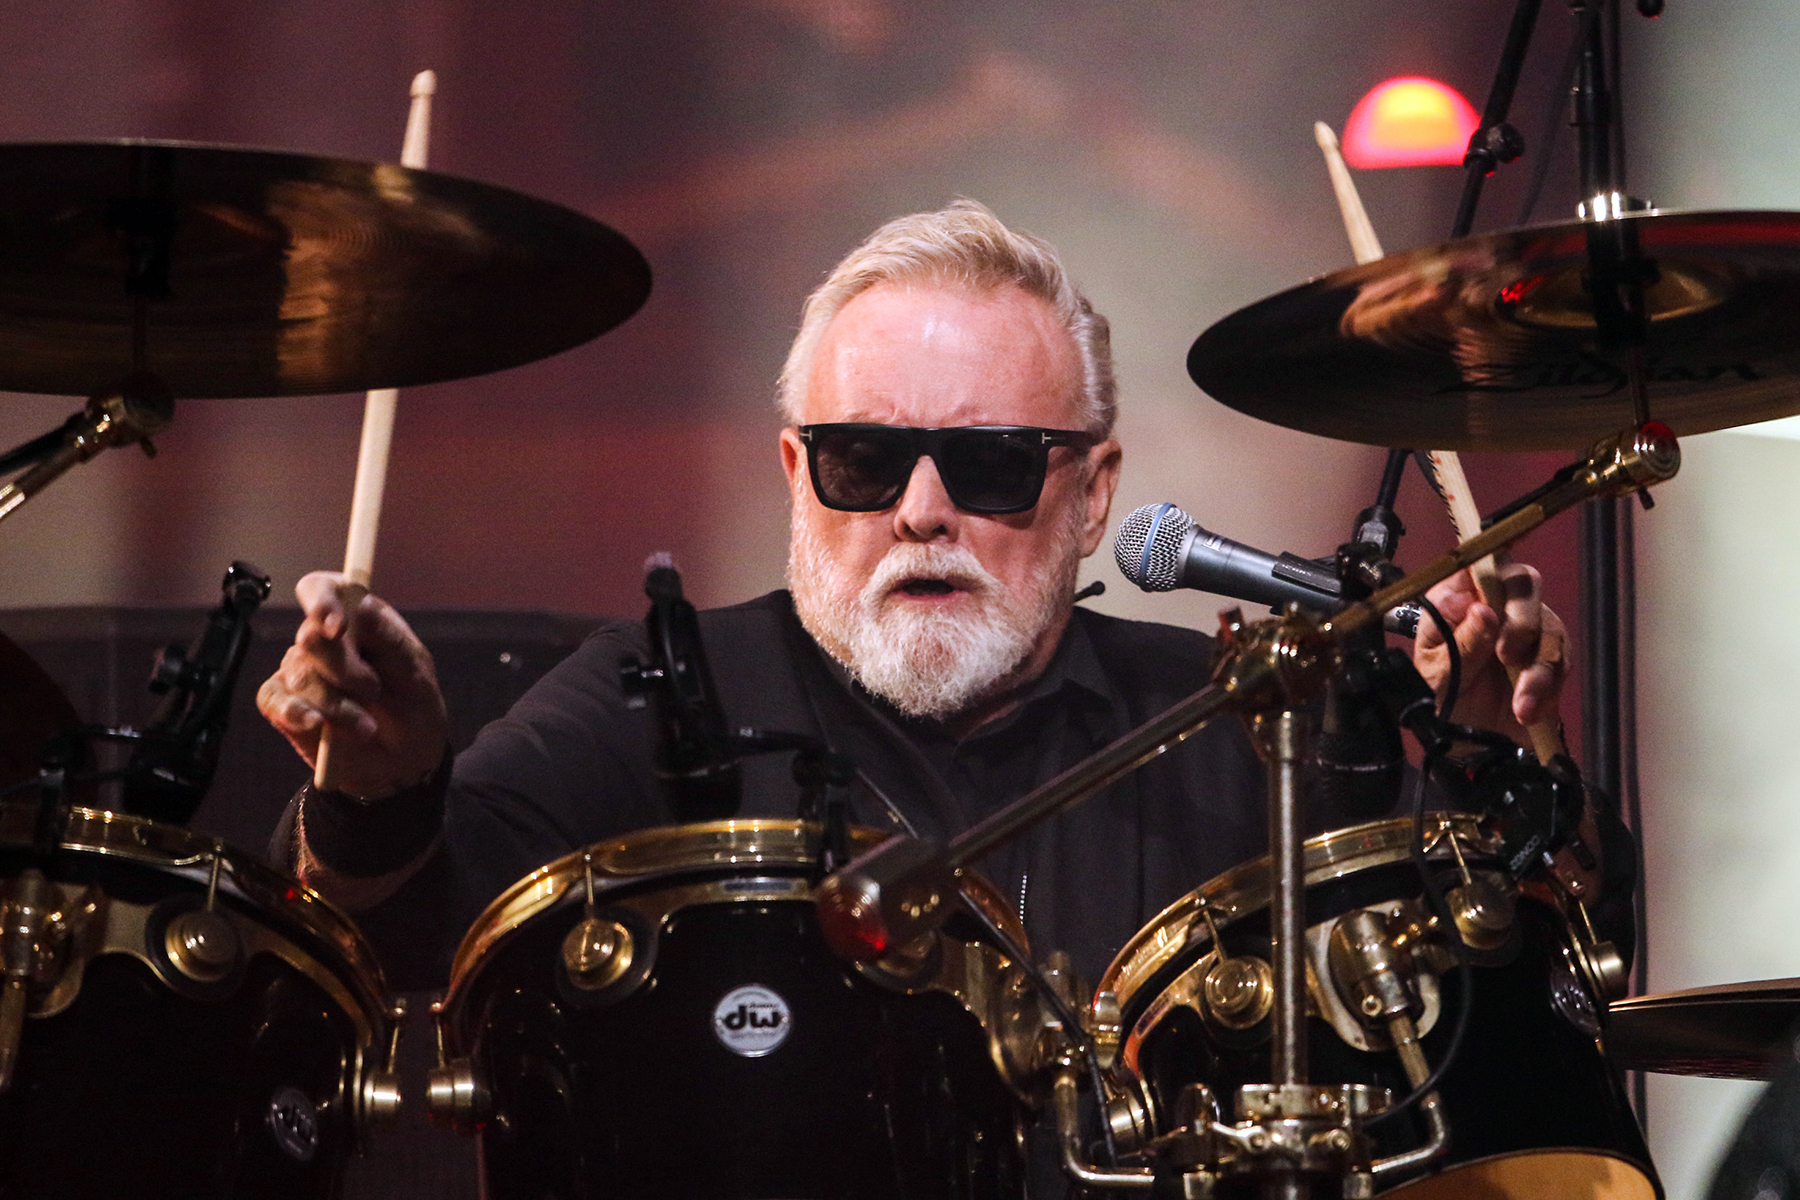 Roger Taylor with Queen + Adam Lambert performs during The Rhapsody Tour at State Farm Arena, in AtlantaThe Rhapsody Tour - , Atlanta, USA - 22 Aug 2019